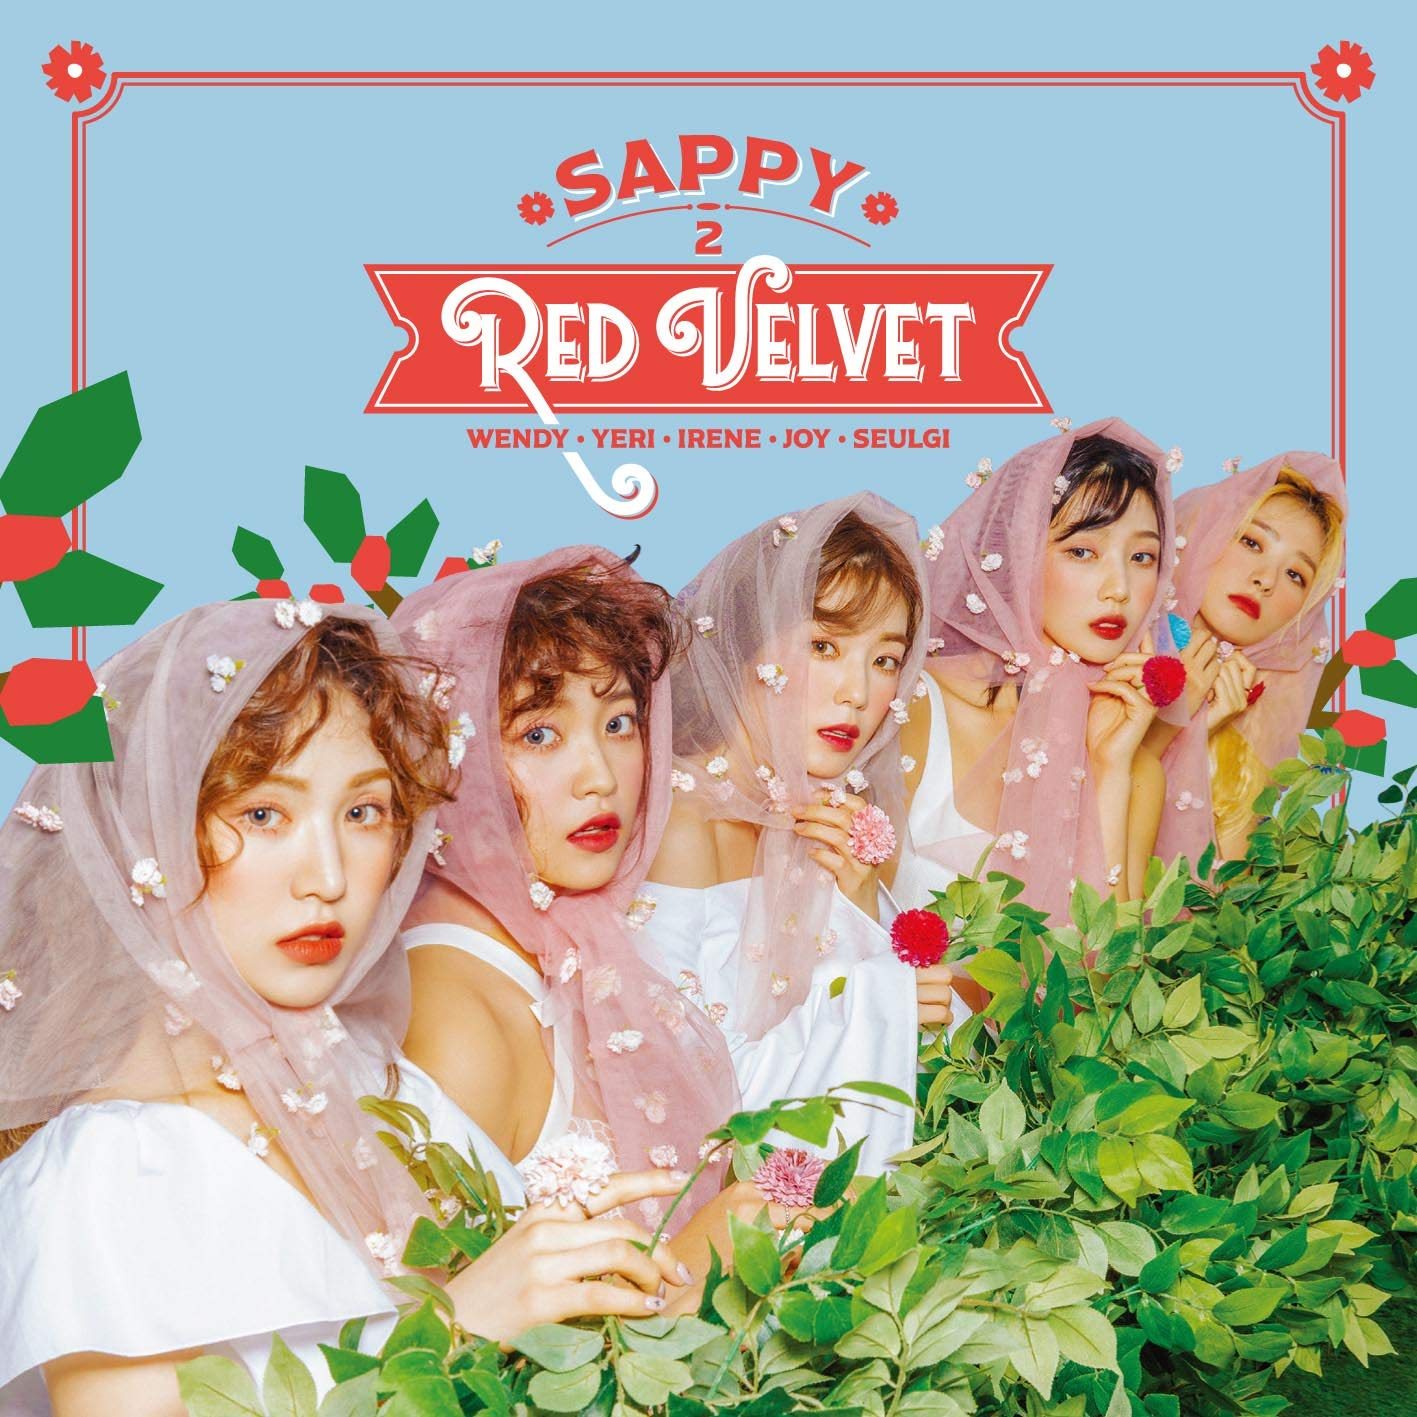 Red Velvet/SAPPY [CD+DVD/통상반][첫회반]